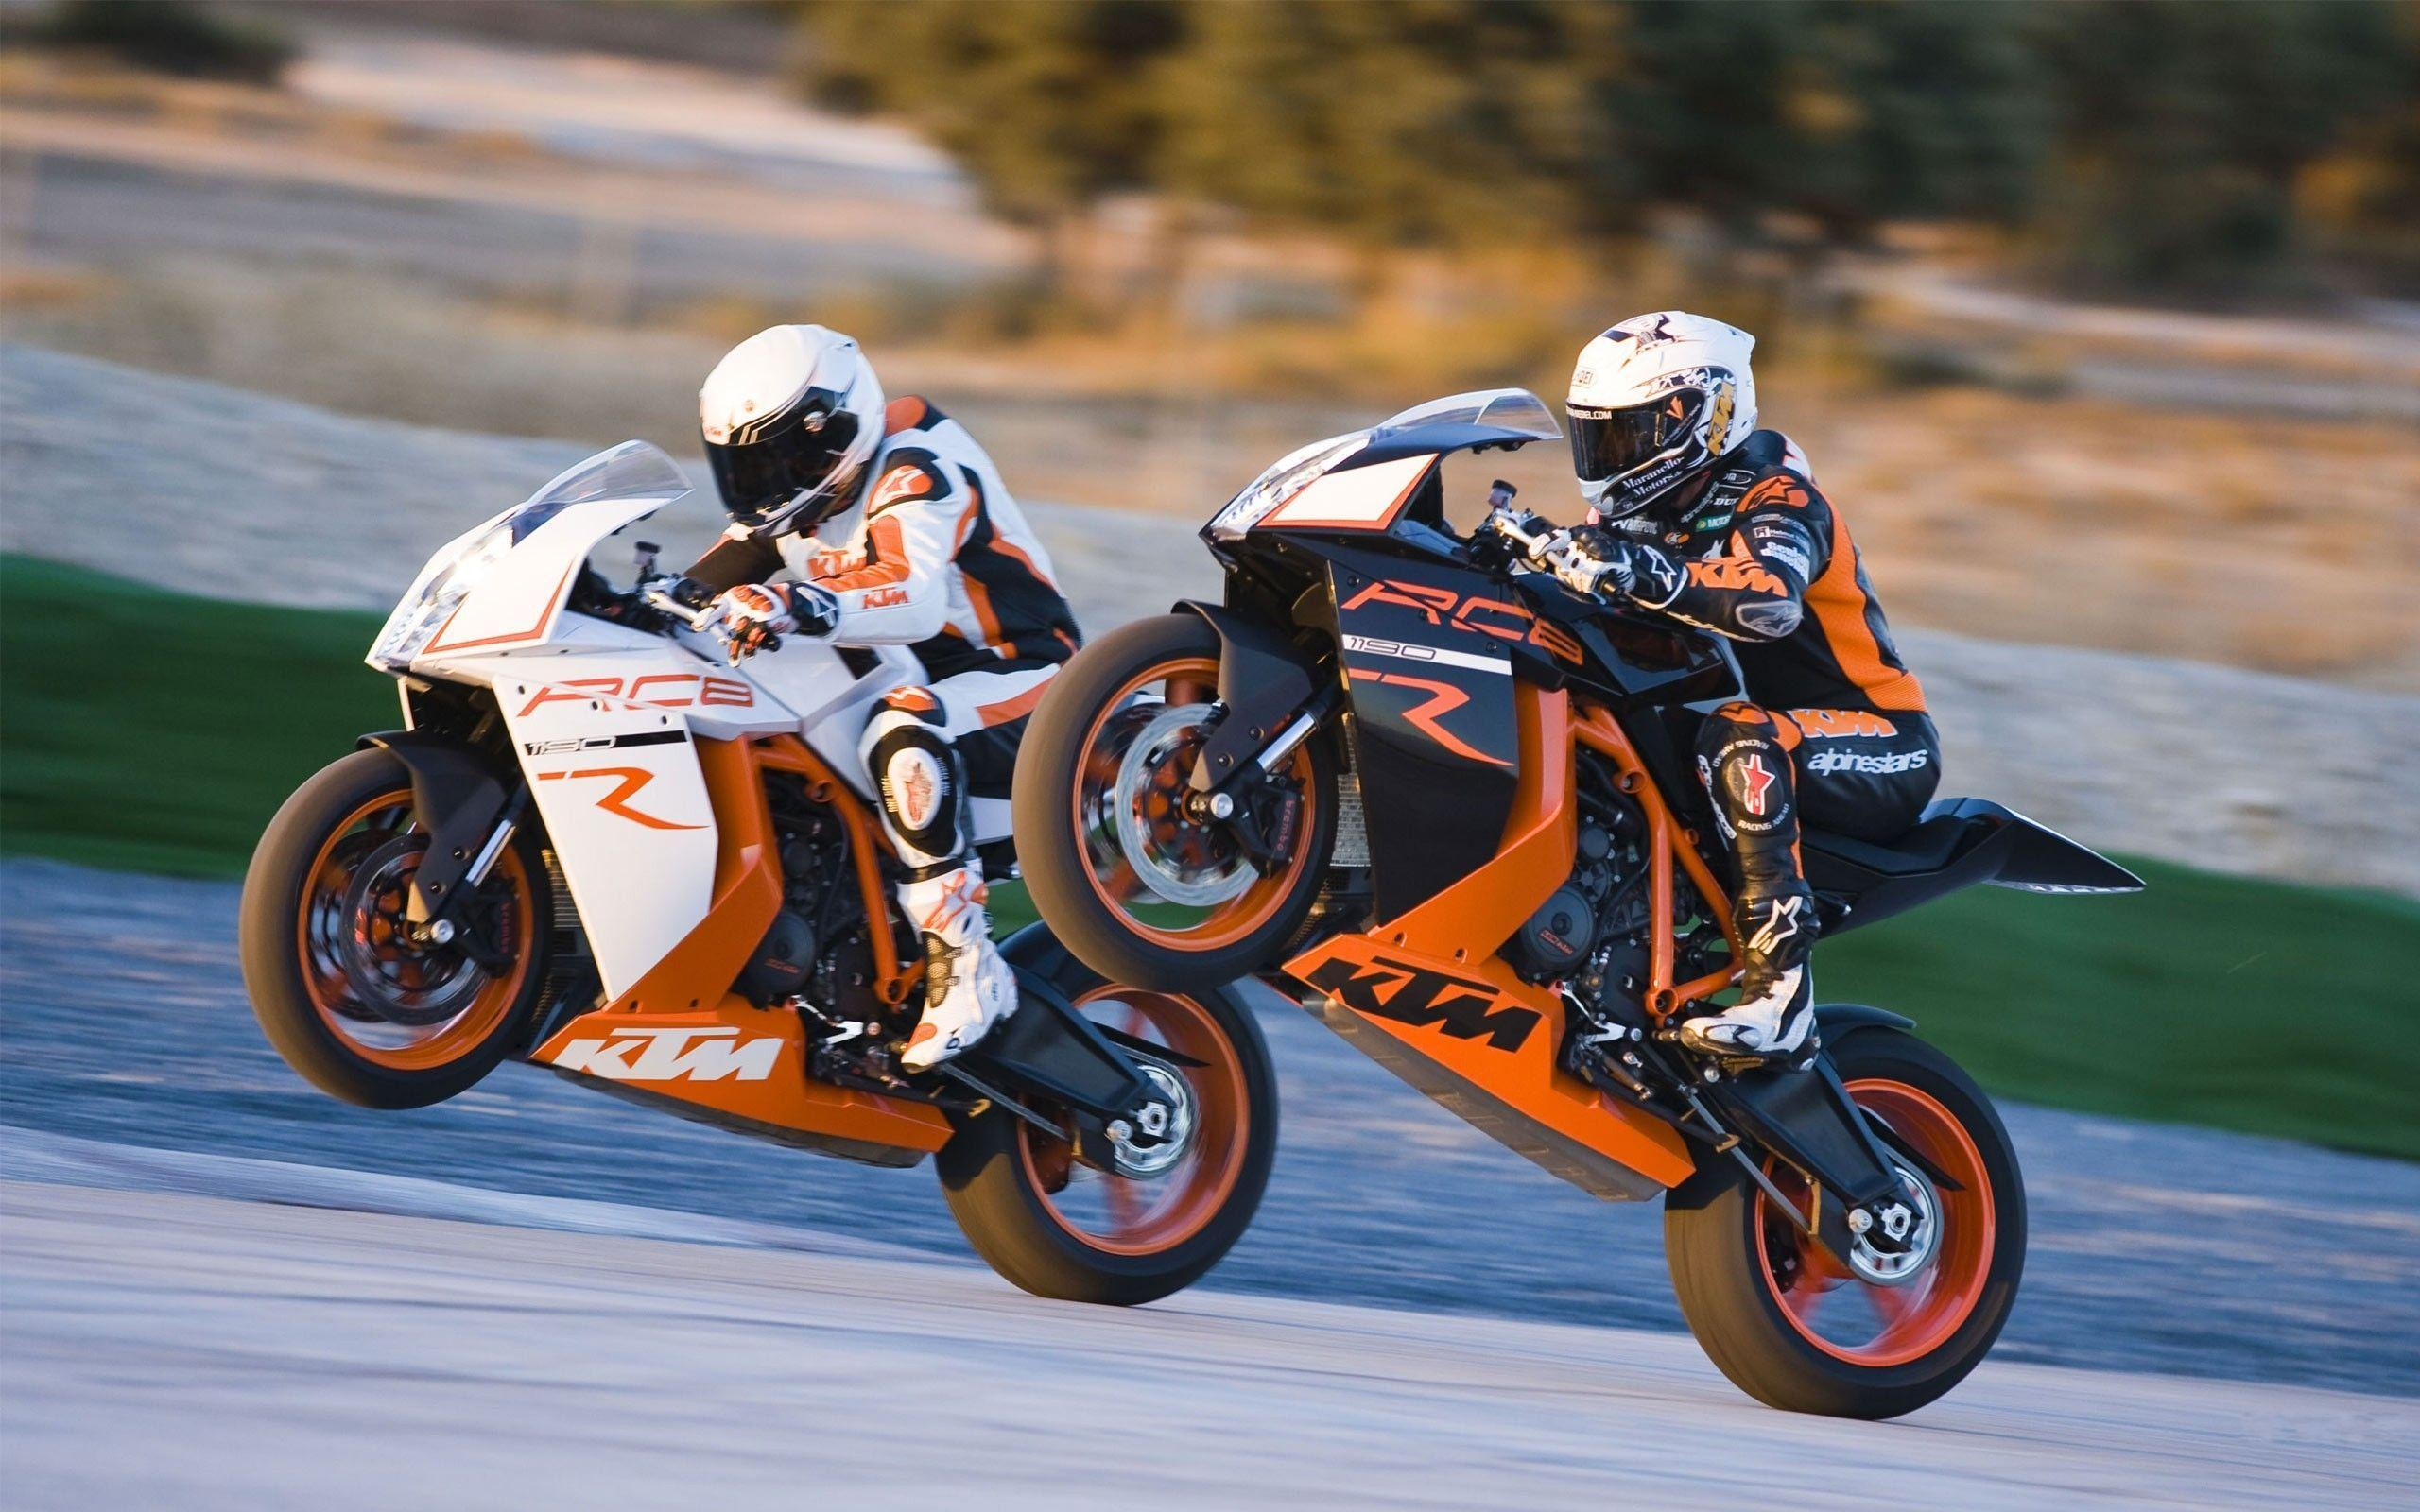 HD KTM Wallpapers and Photos | HD Bikes Wallpapers